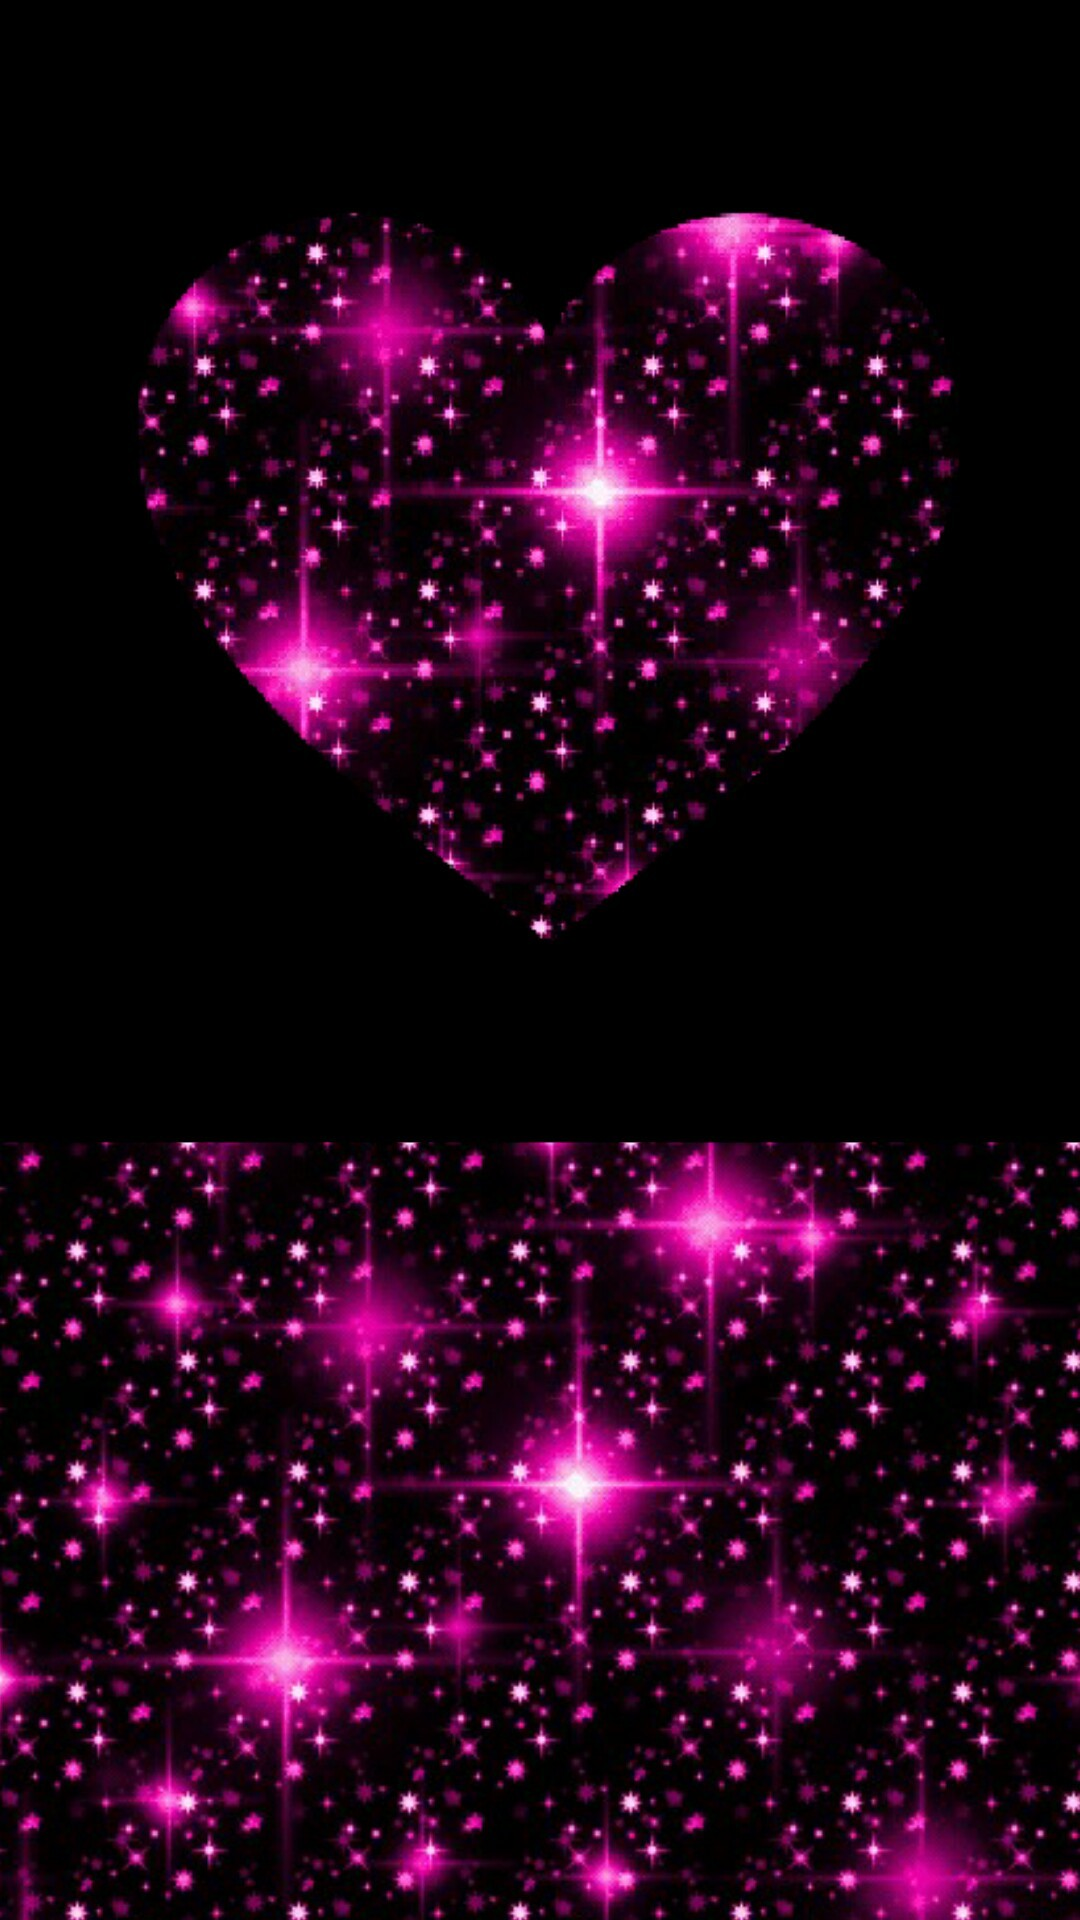 Wallpaper backgrounds · Black and pink